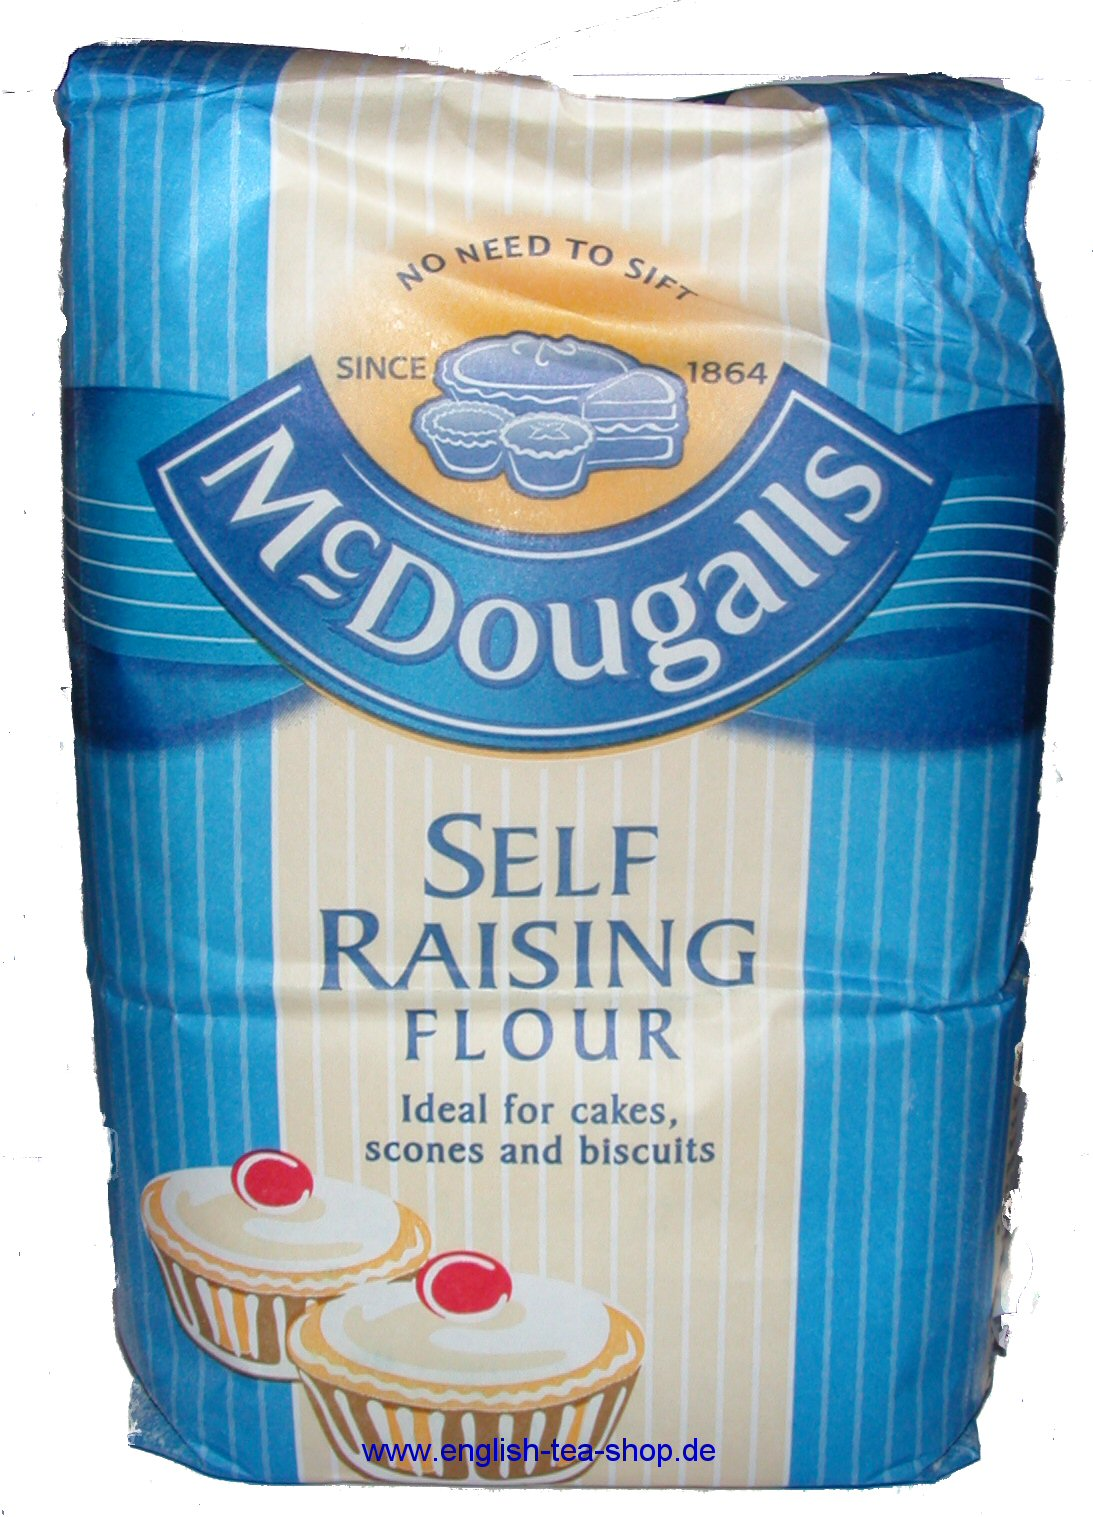 McDougalls Self Raising Flour - The English Tea Shop Raising Flour